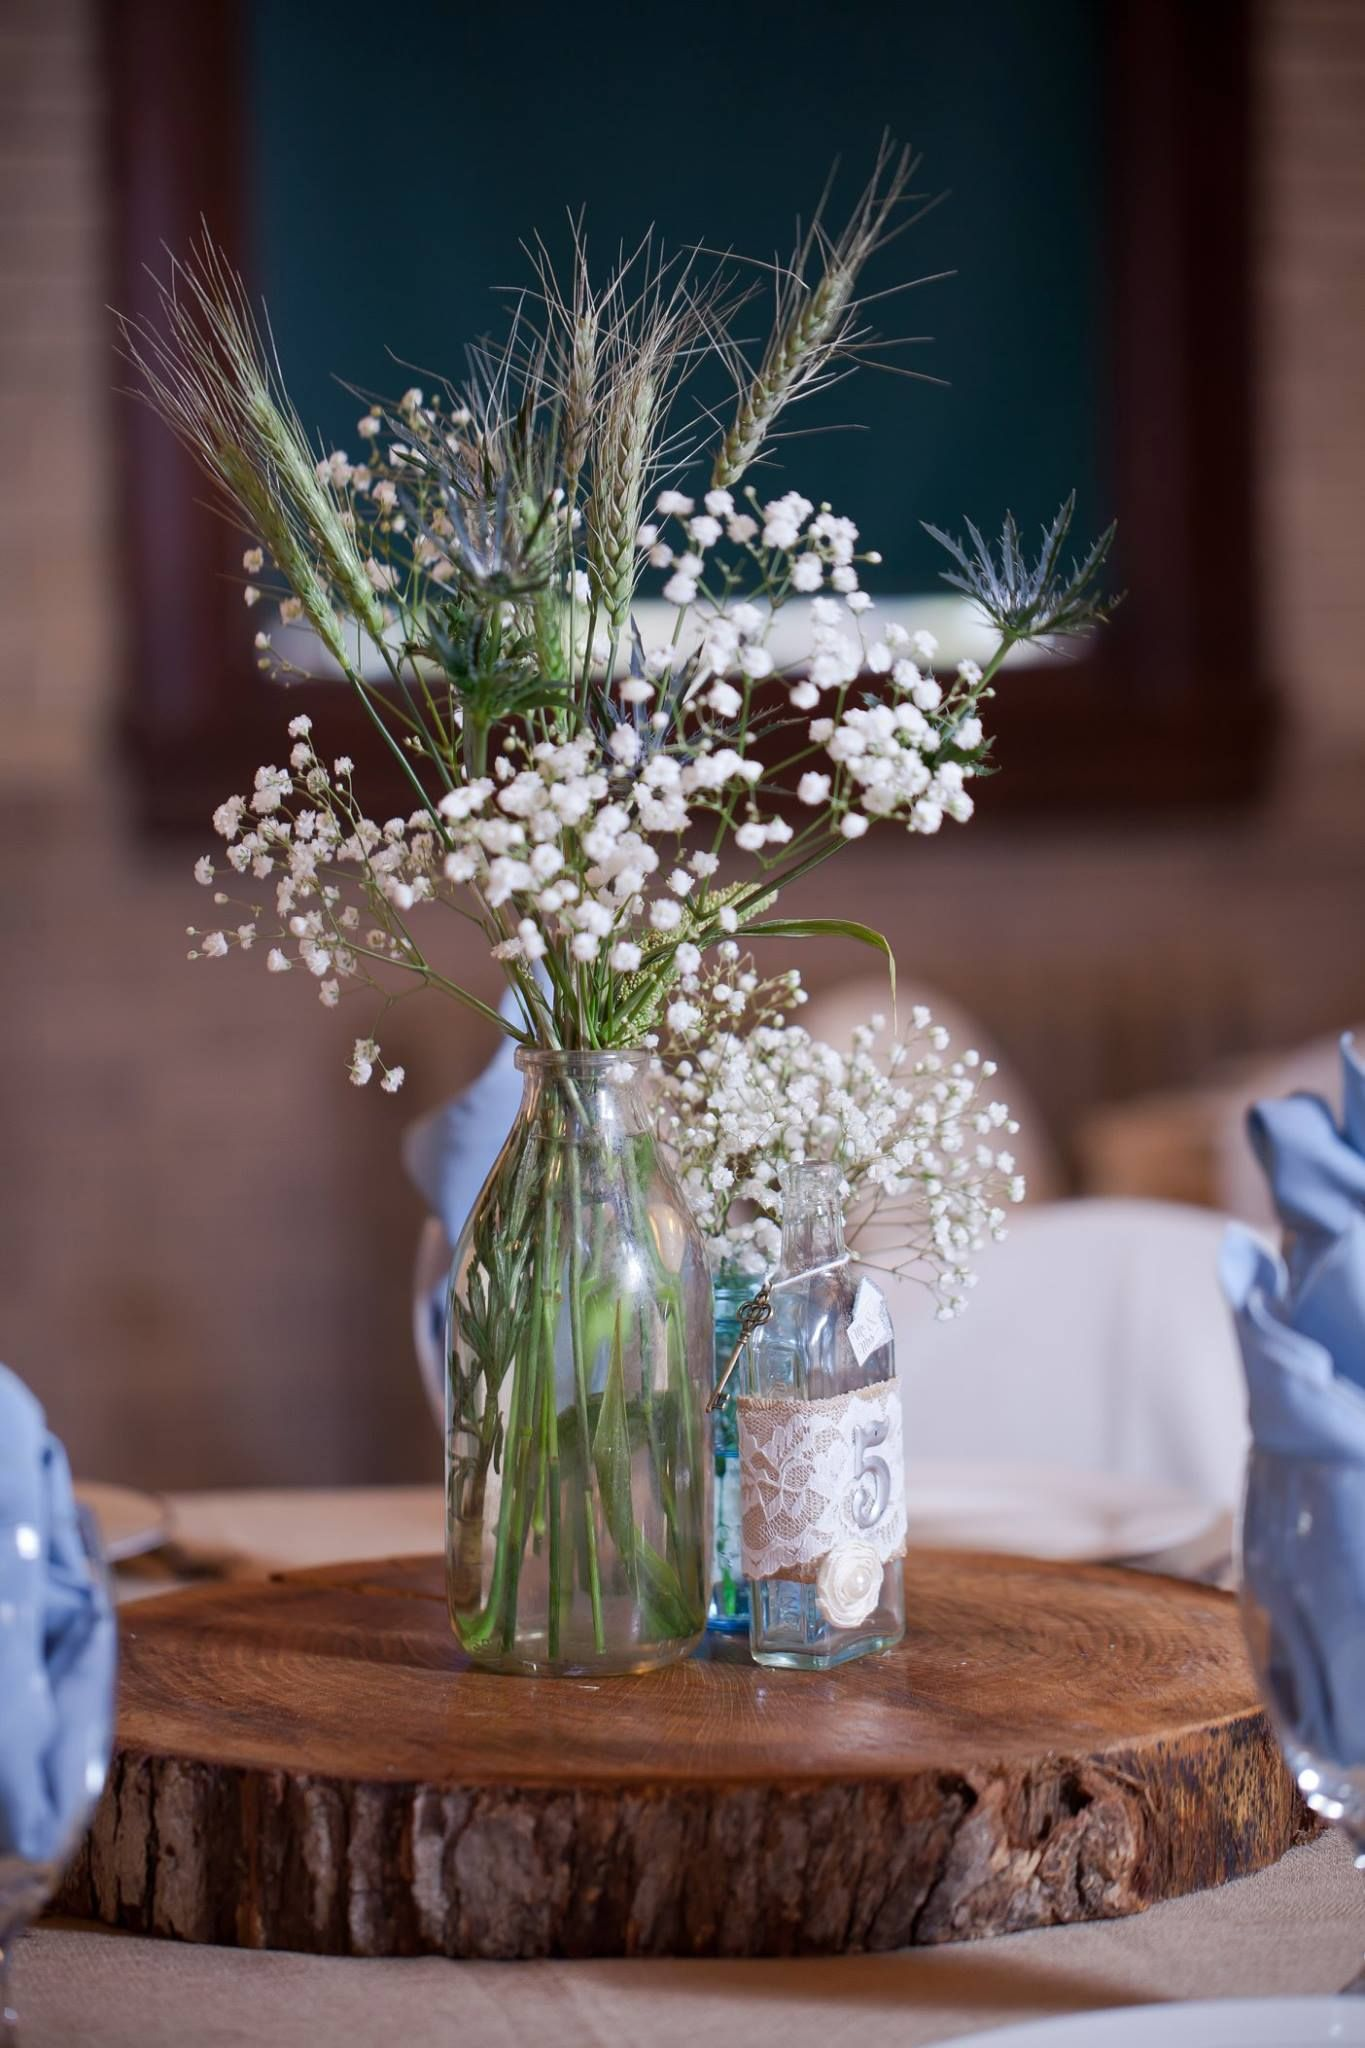 Rustic wedding centerpiece wood slab vintage bottle